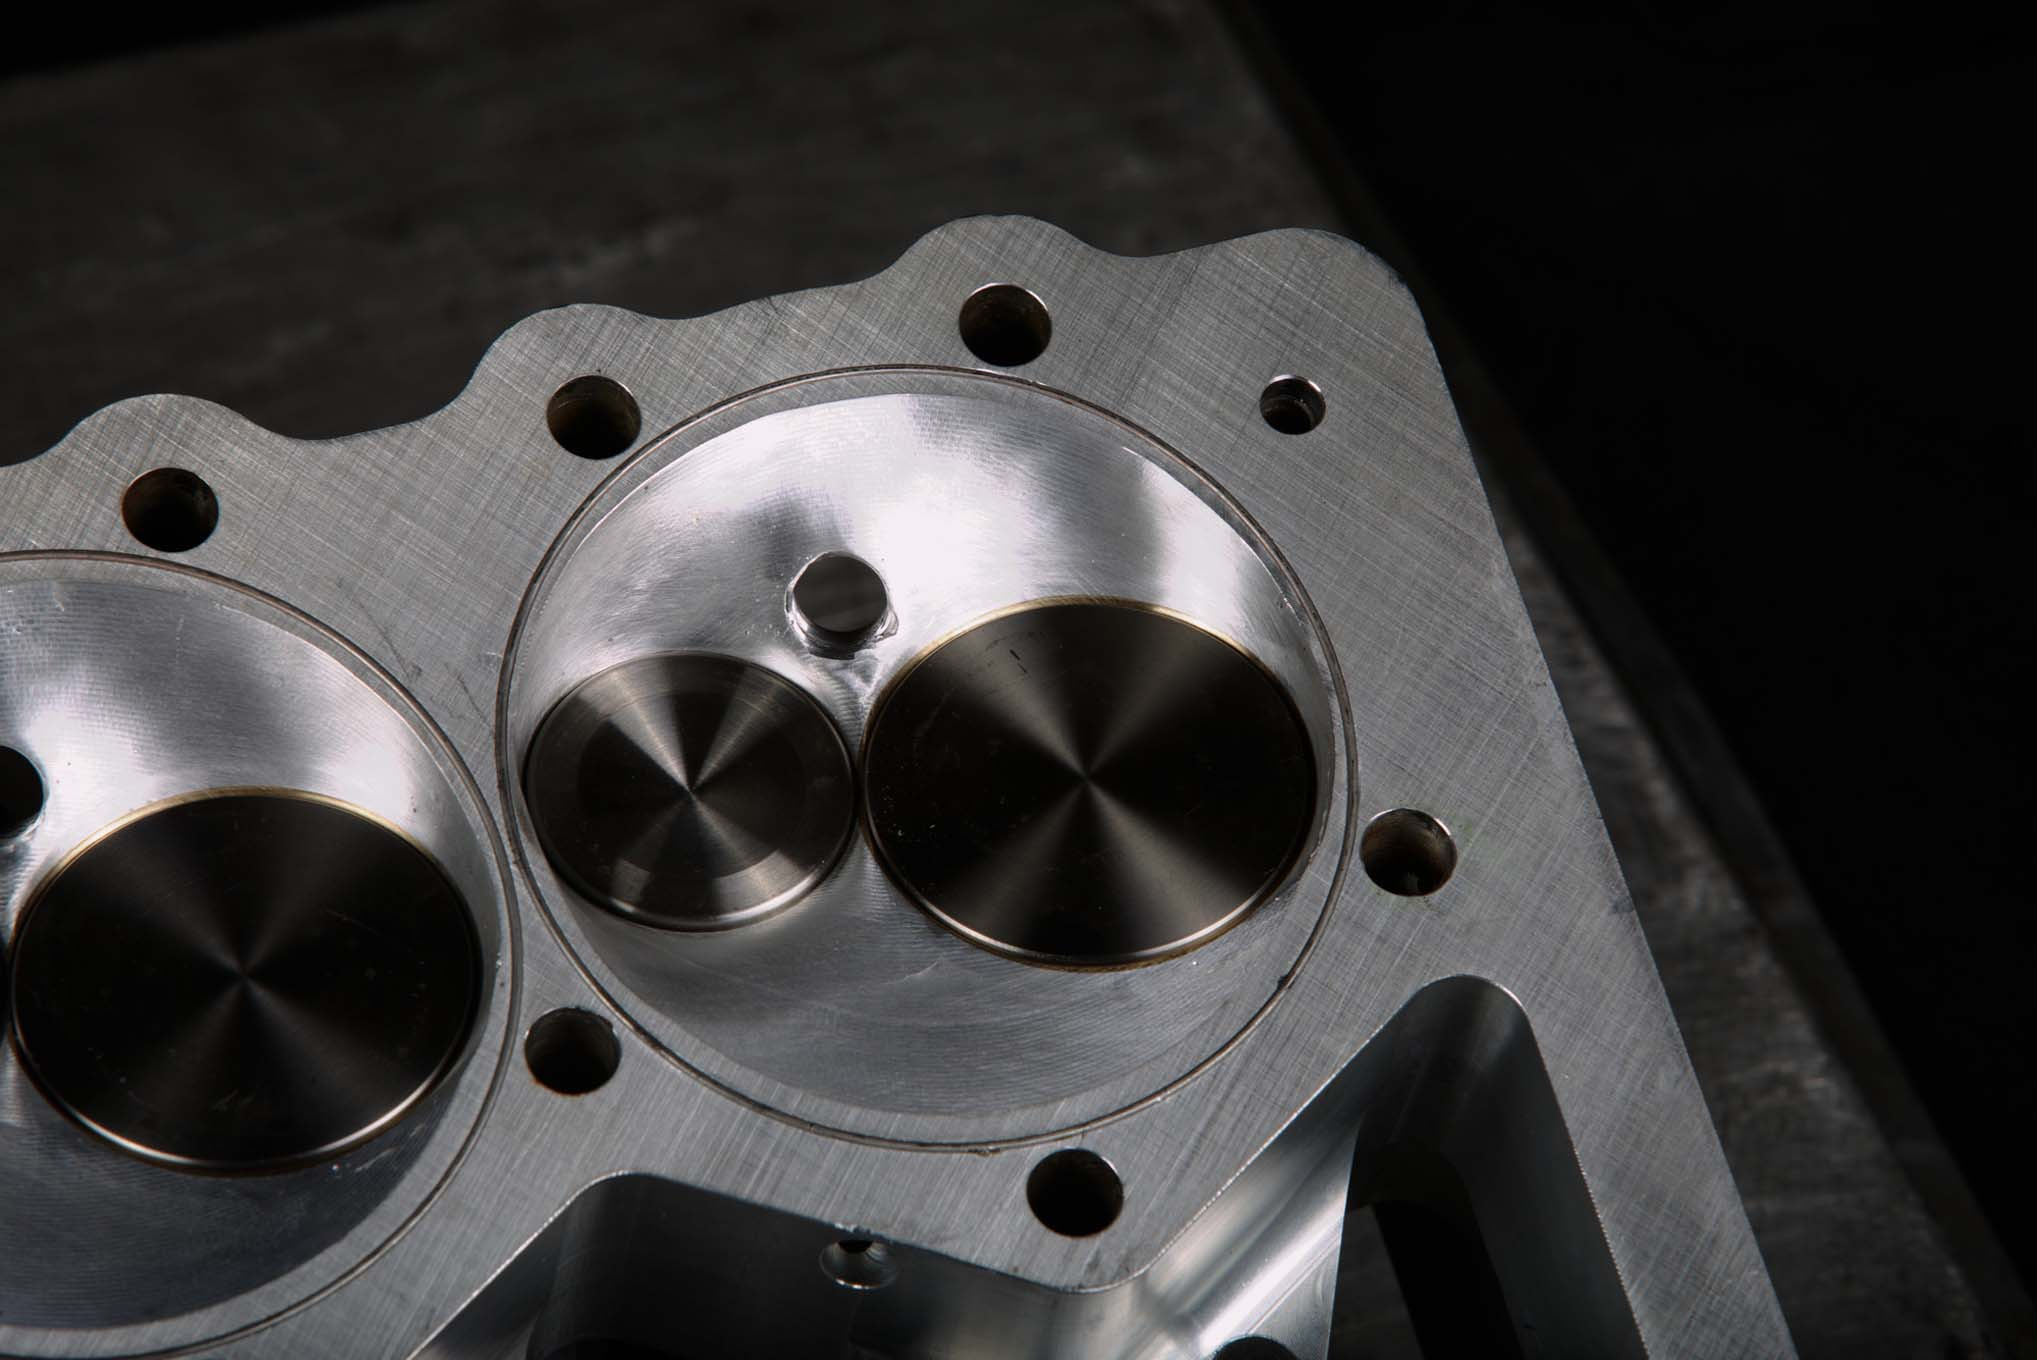 The Alan Johnson billet heads feature intake-exhaust, intake-exhaust, intake-exhaust, intake-exhaust valve arrangement, which cuts down on heat generated by the siamesed exhaust ports in a production Chevy small-block head. The previous head with symmetric valve arrangement was causing dropped valves with ever-increasing frequency.